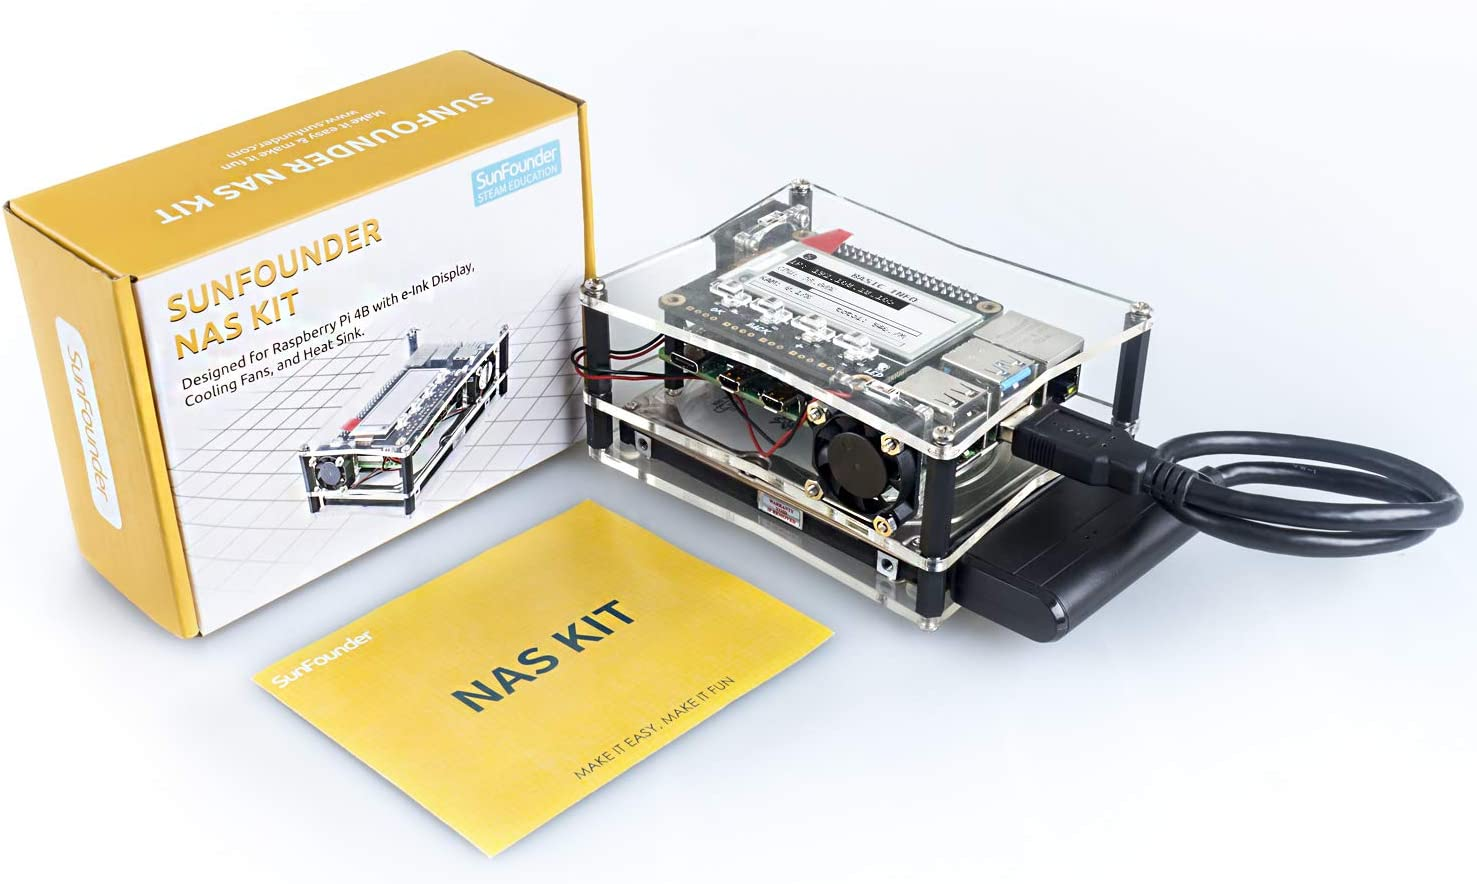 SUNFOUNDER NAS Kit for Raspberry pi 4B 3B+ 3B 3A+ 2B, NAS Hat, Dual Fan, Micro SD Card Included: Amazon.es: Electrónica